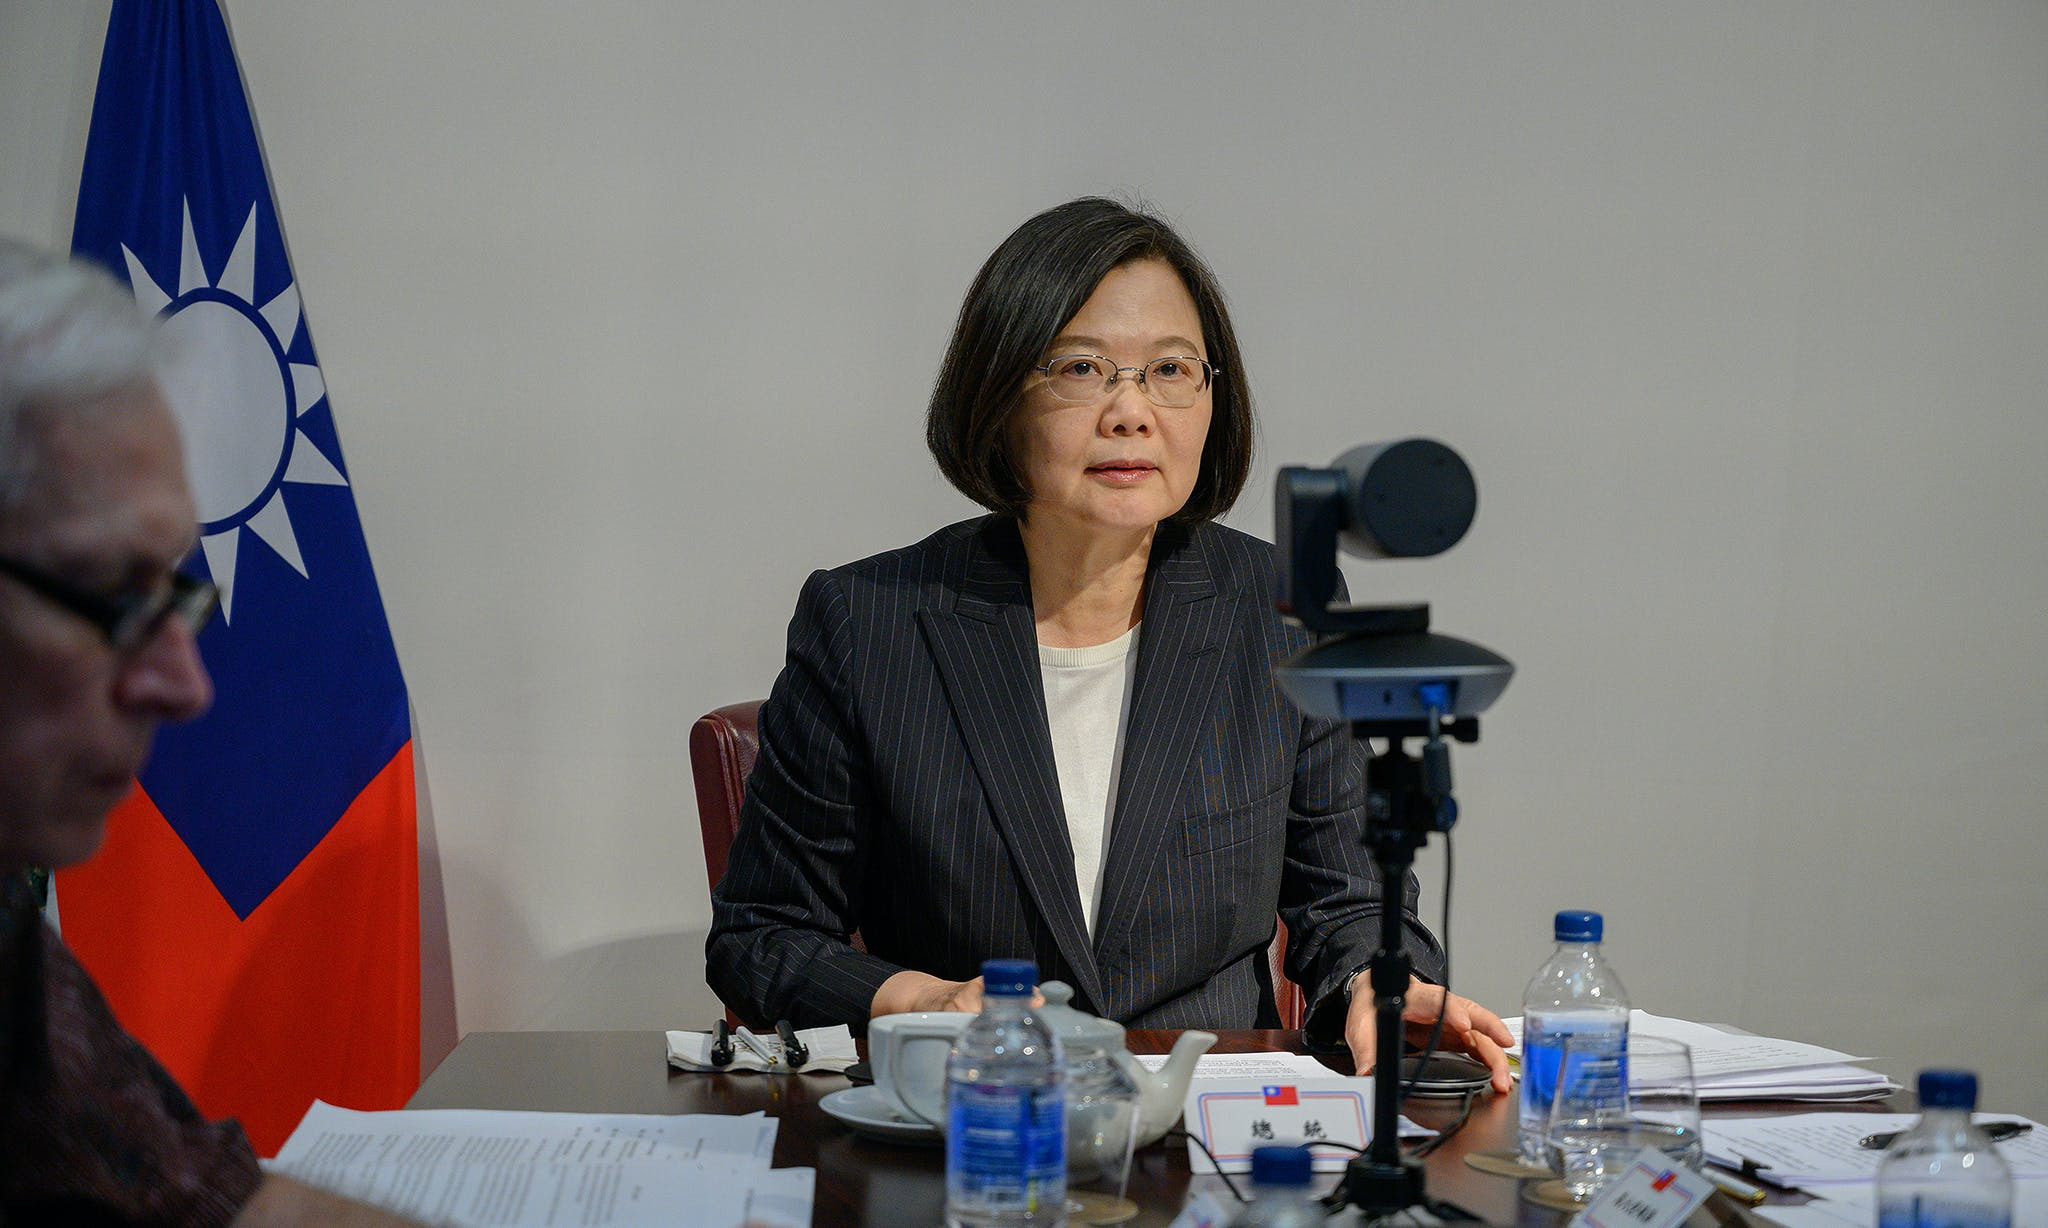 President Tsai Calls for US Support of Taiwan in Address to Heritage Foundation